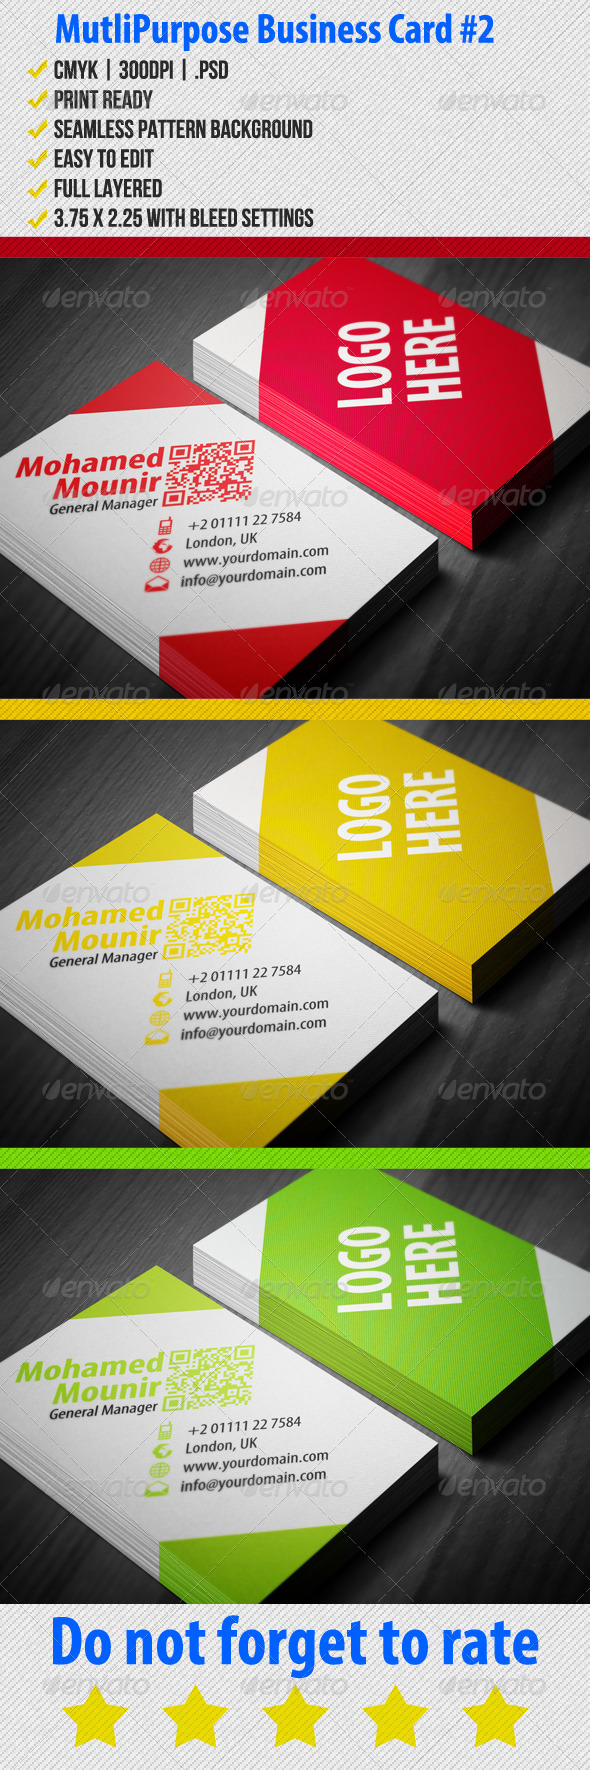 Multipurpose Business Card 2 - Corporate Business Cards